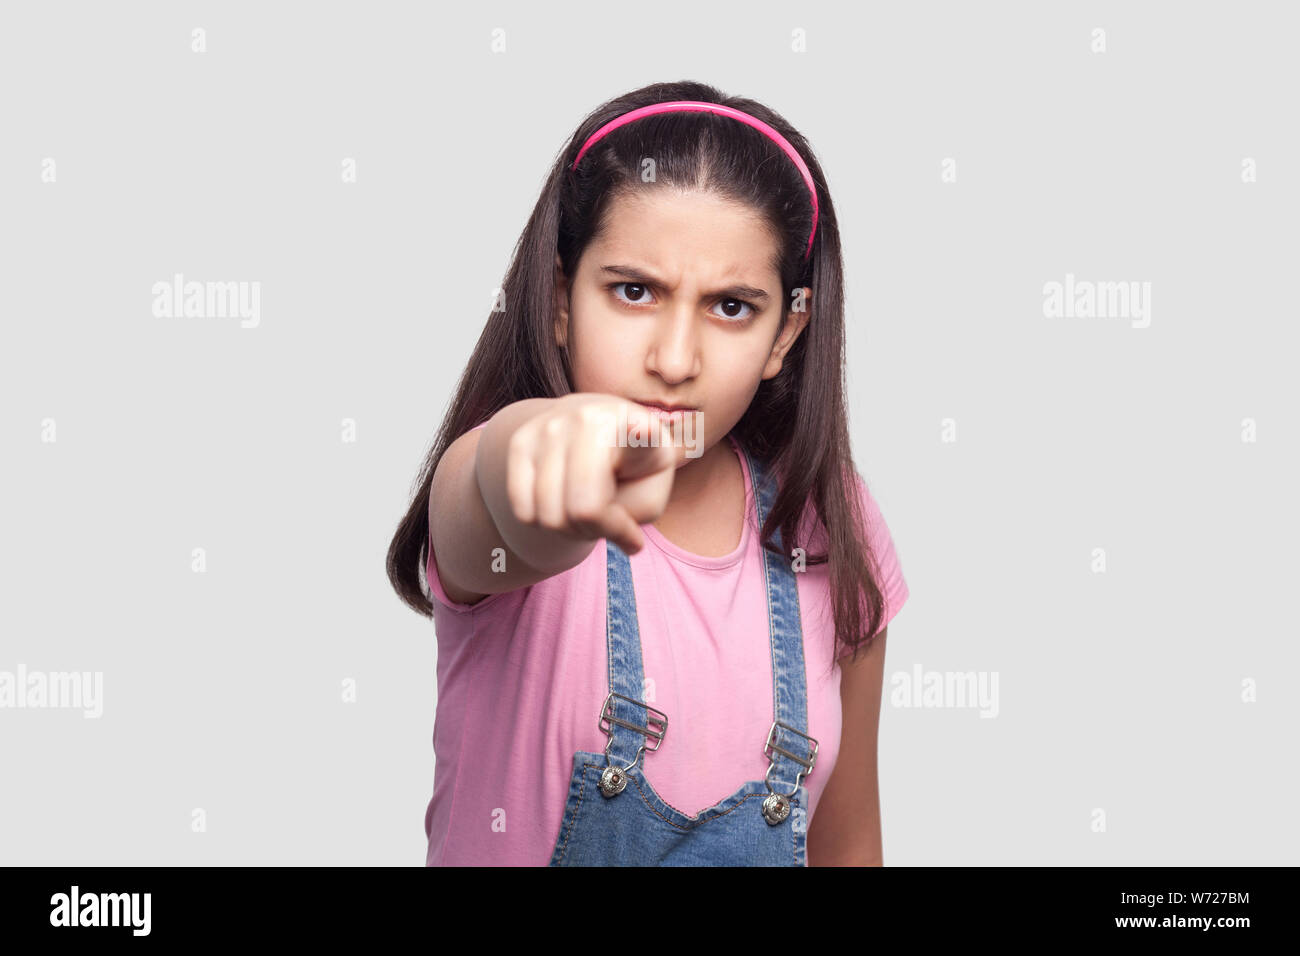 Hey you! Portrait of serious brunette young girl in casual style, pink t-shirt and blue denim overalls standing, blame, looking and accusing at camera Stock Photo